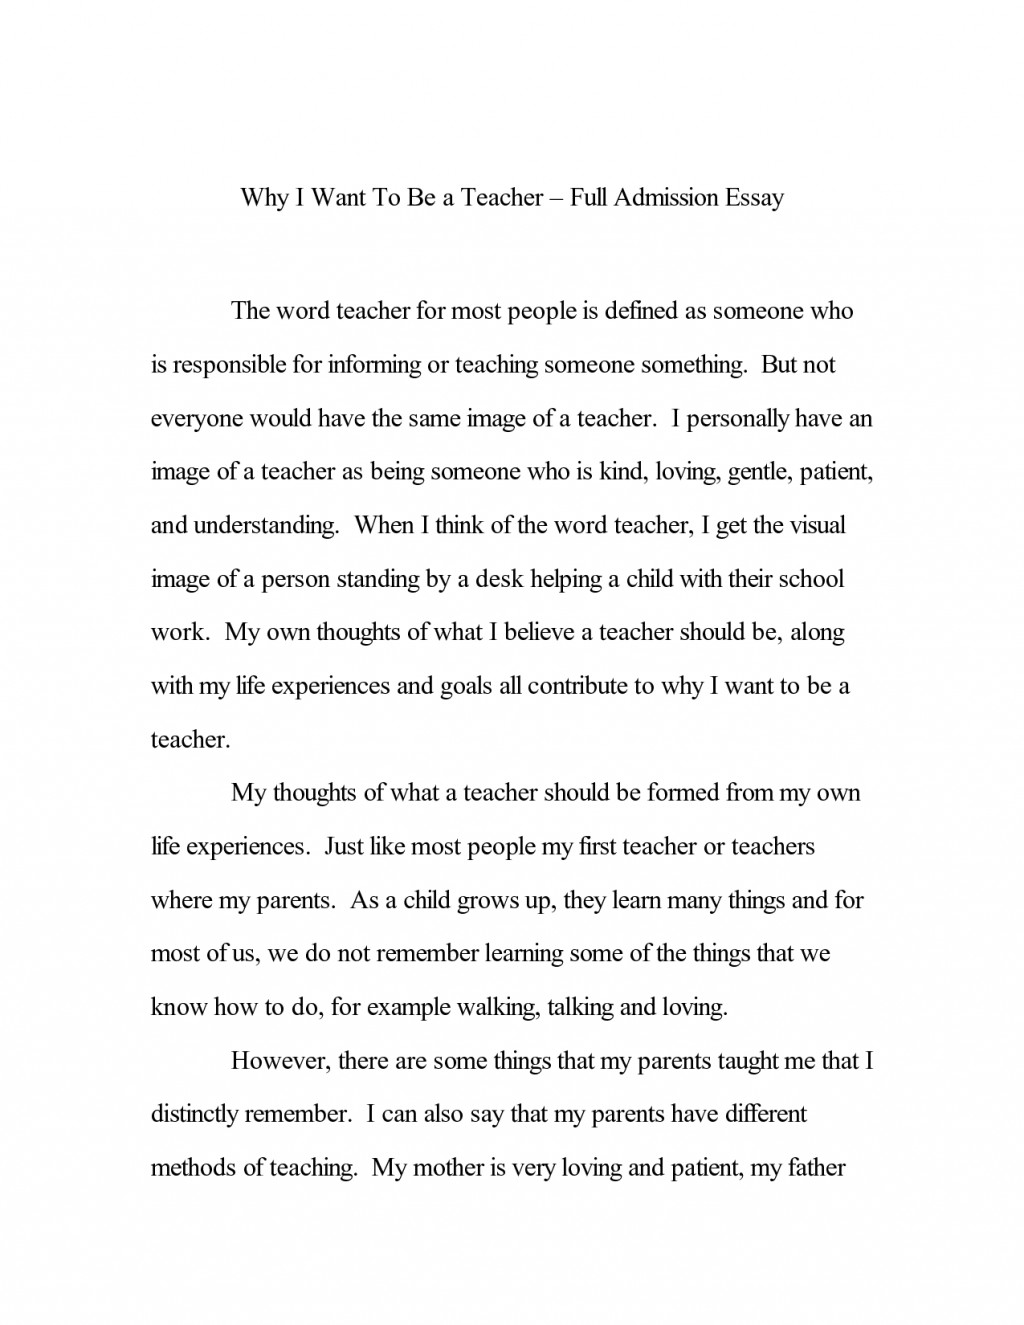 004 Writing College Application Essay Rare A Topics To Write On Tips For About Yourself Large